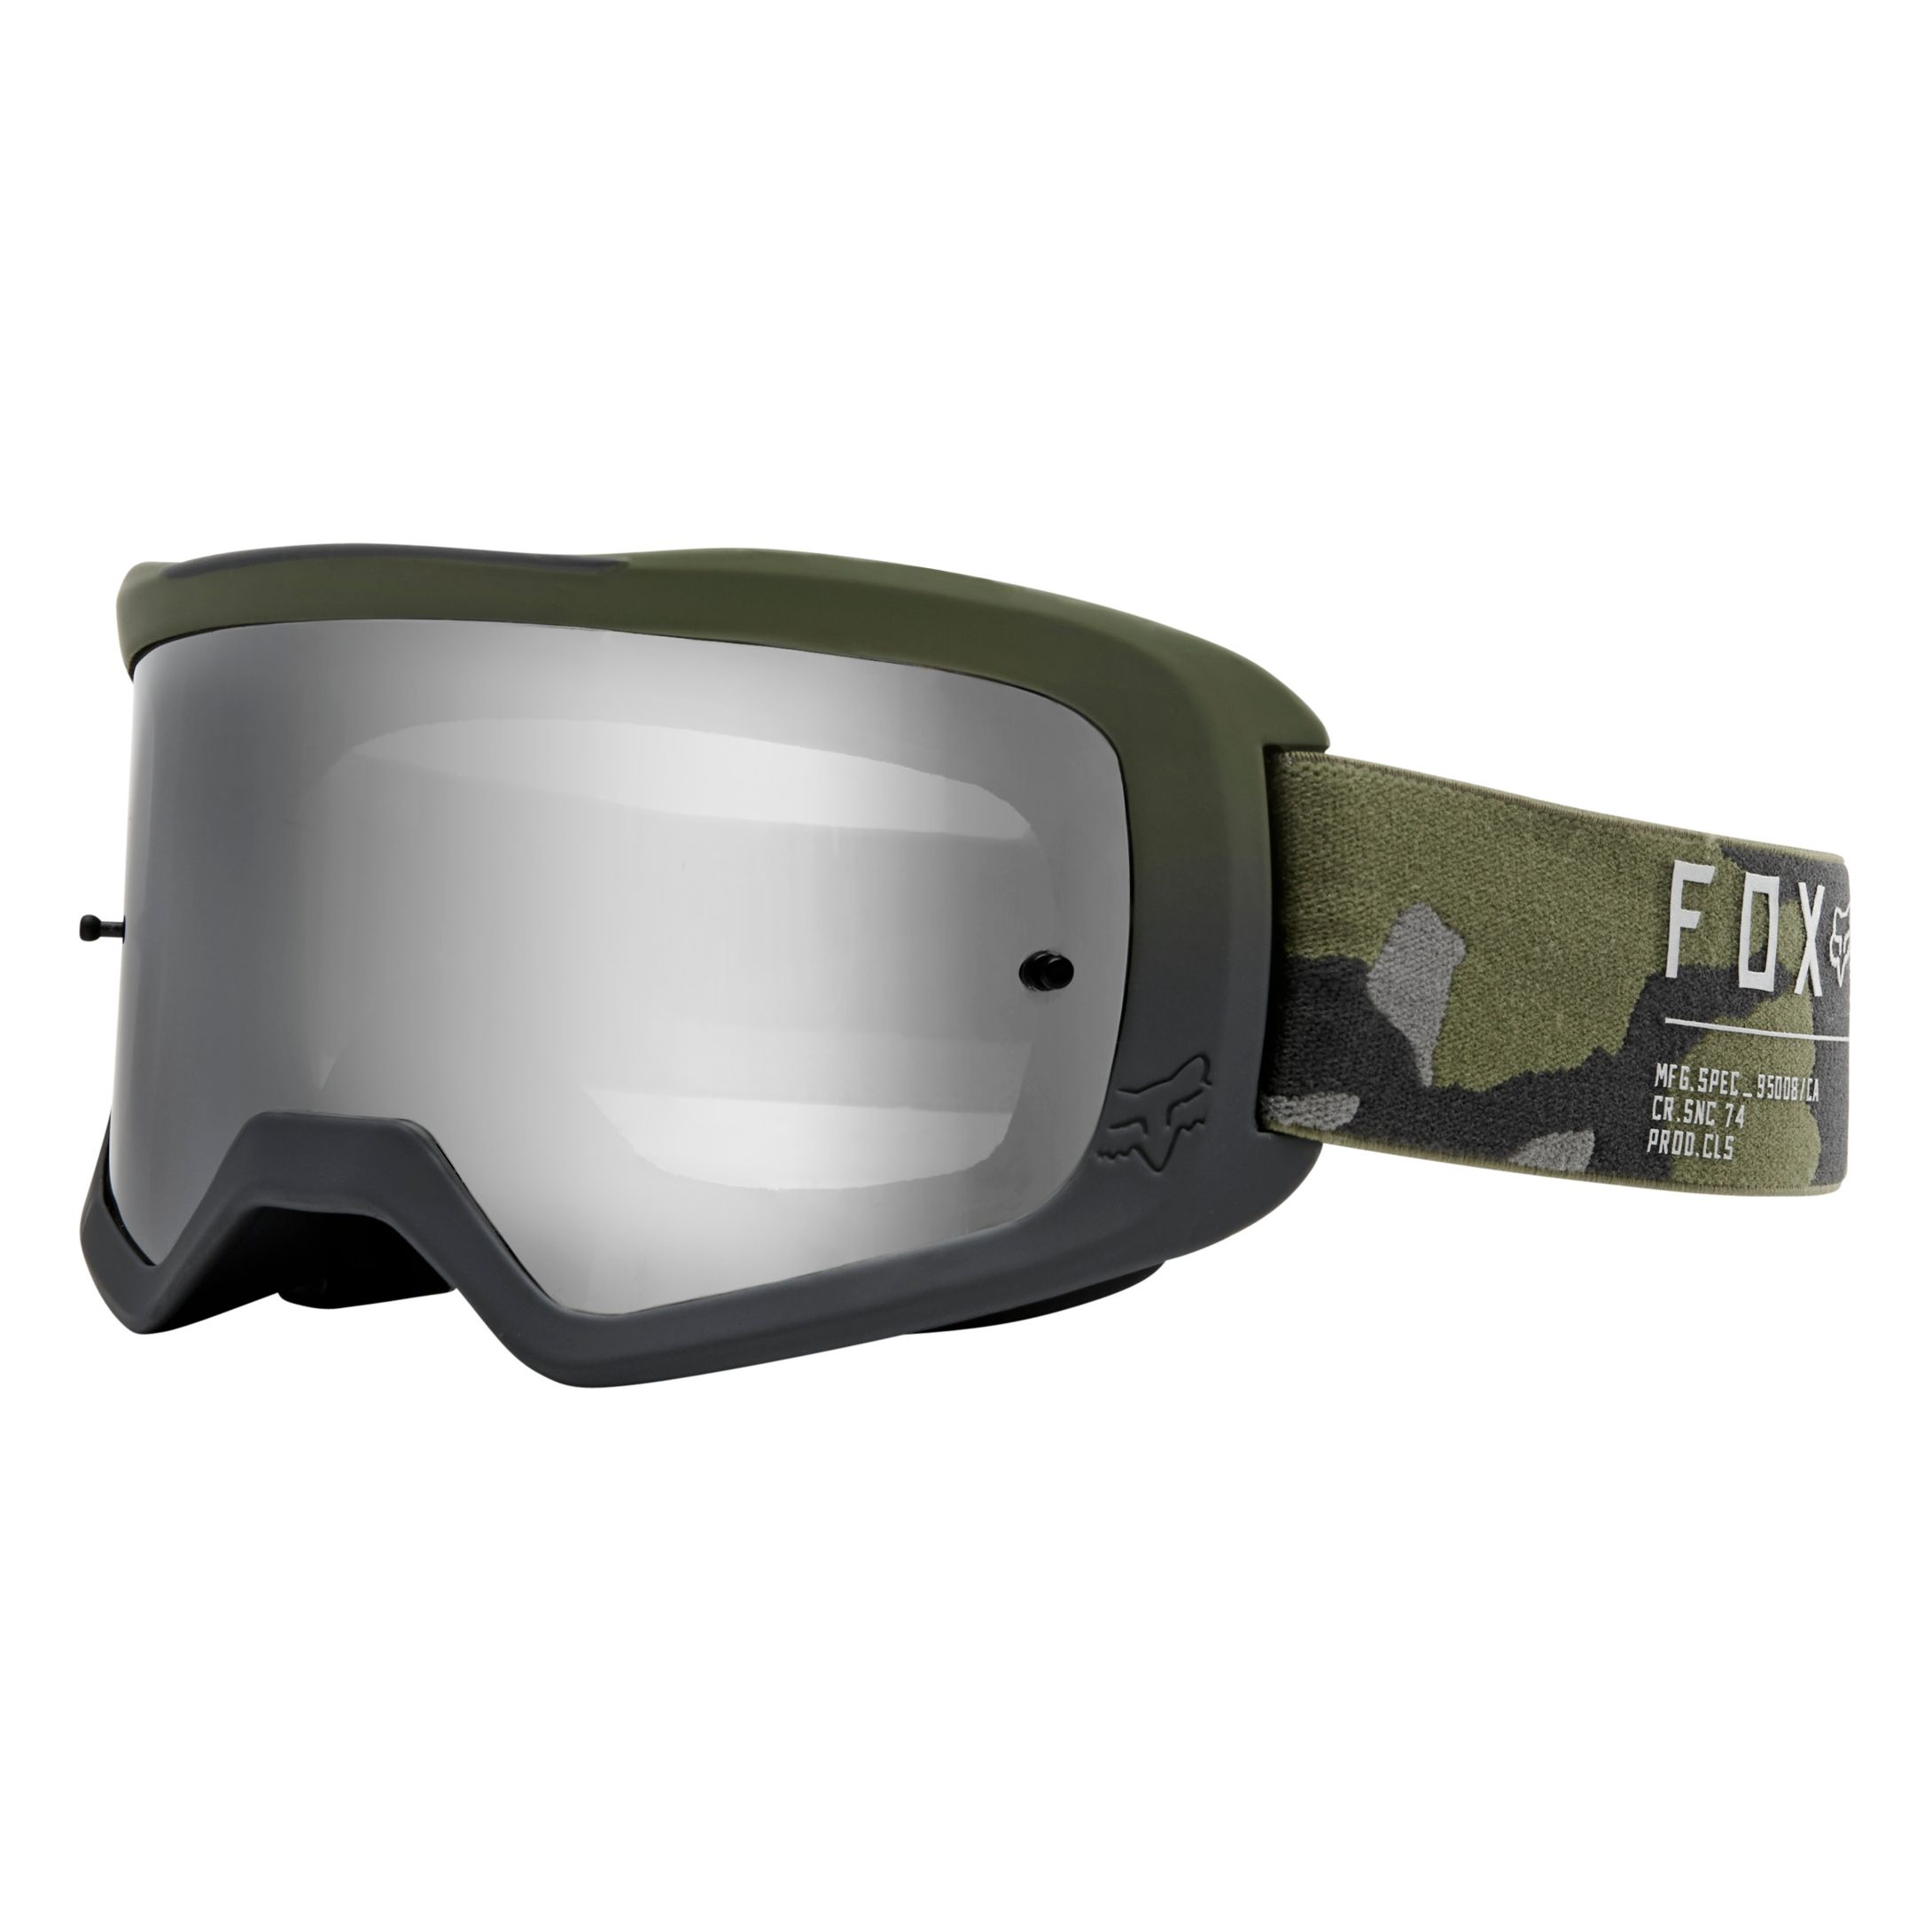 Gafas de motocross Fox YOUTH MAIN II - GAIN SPARK - CAMO